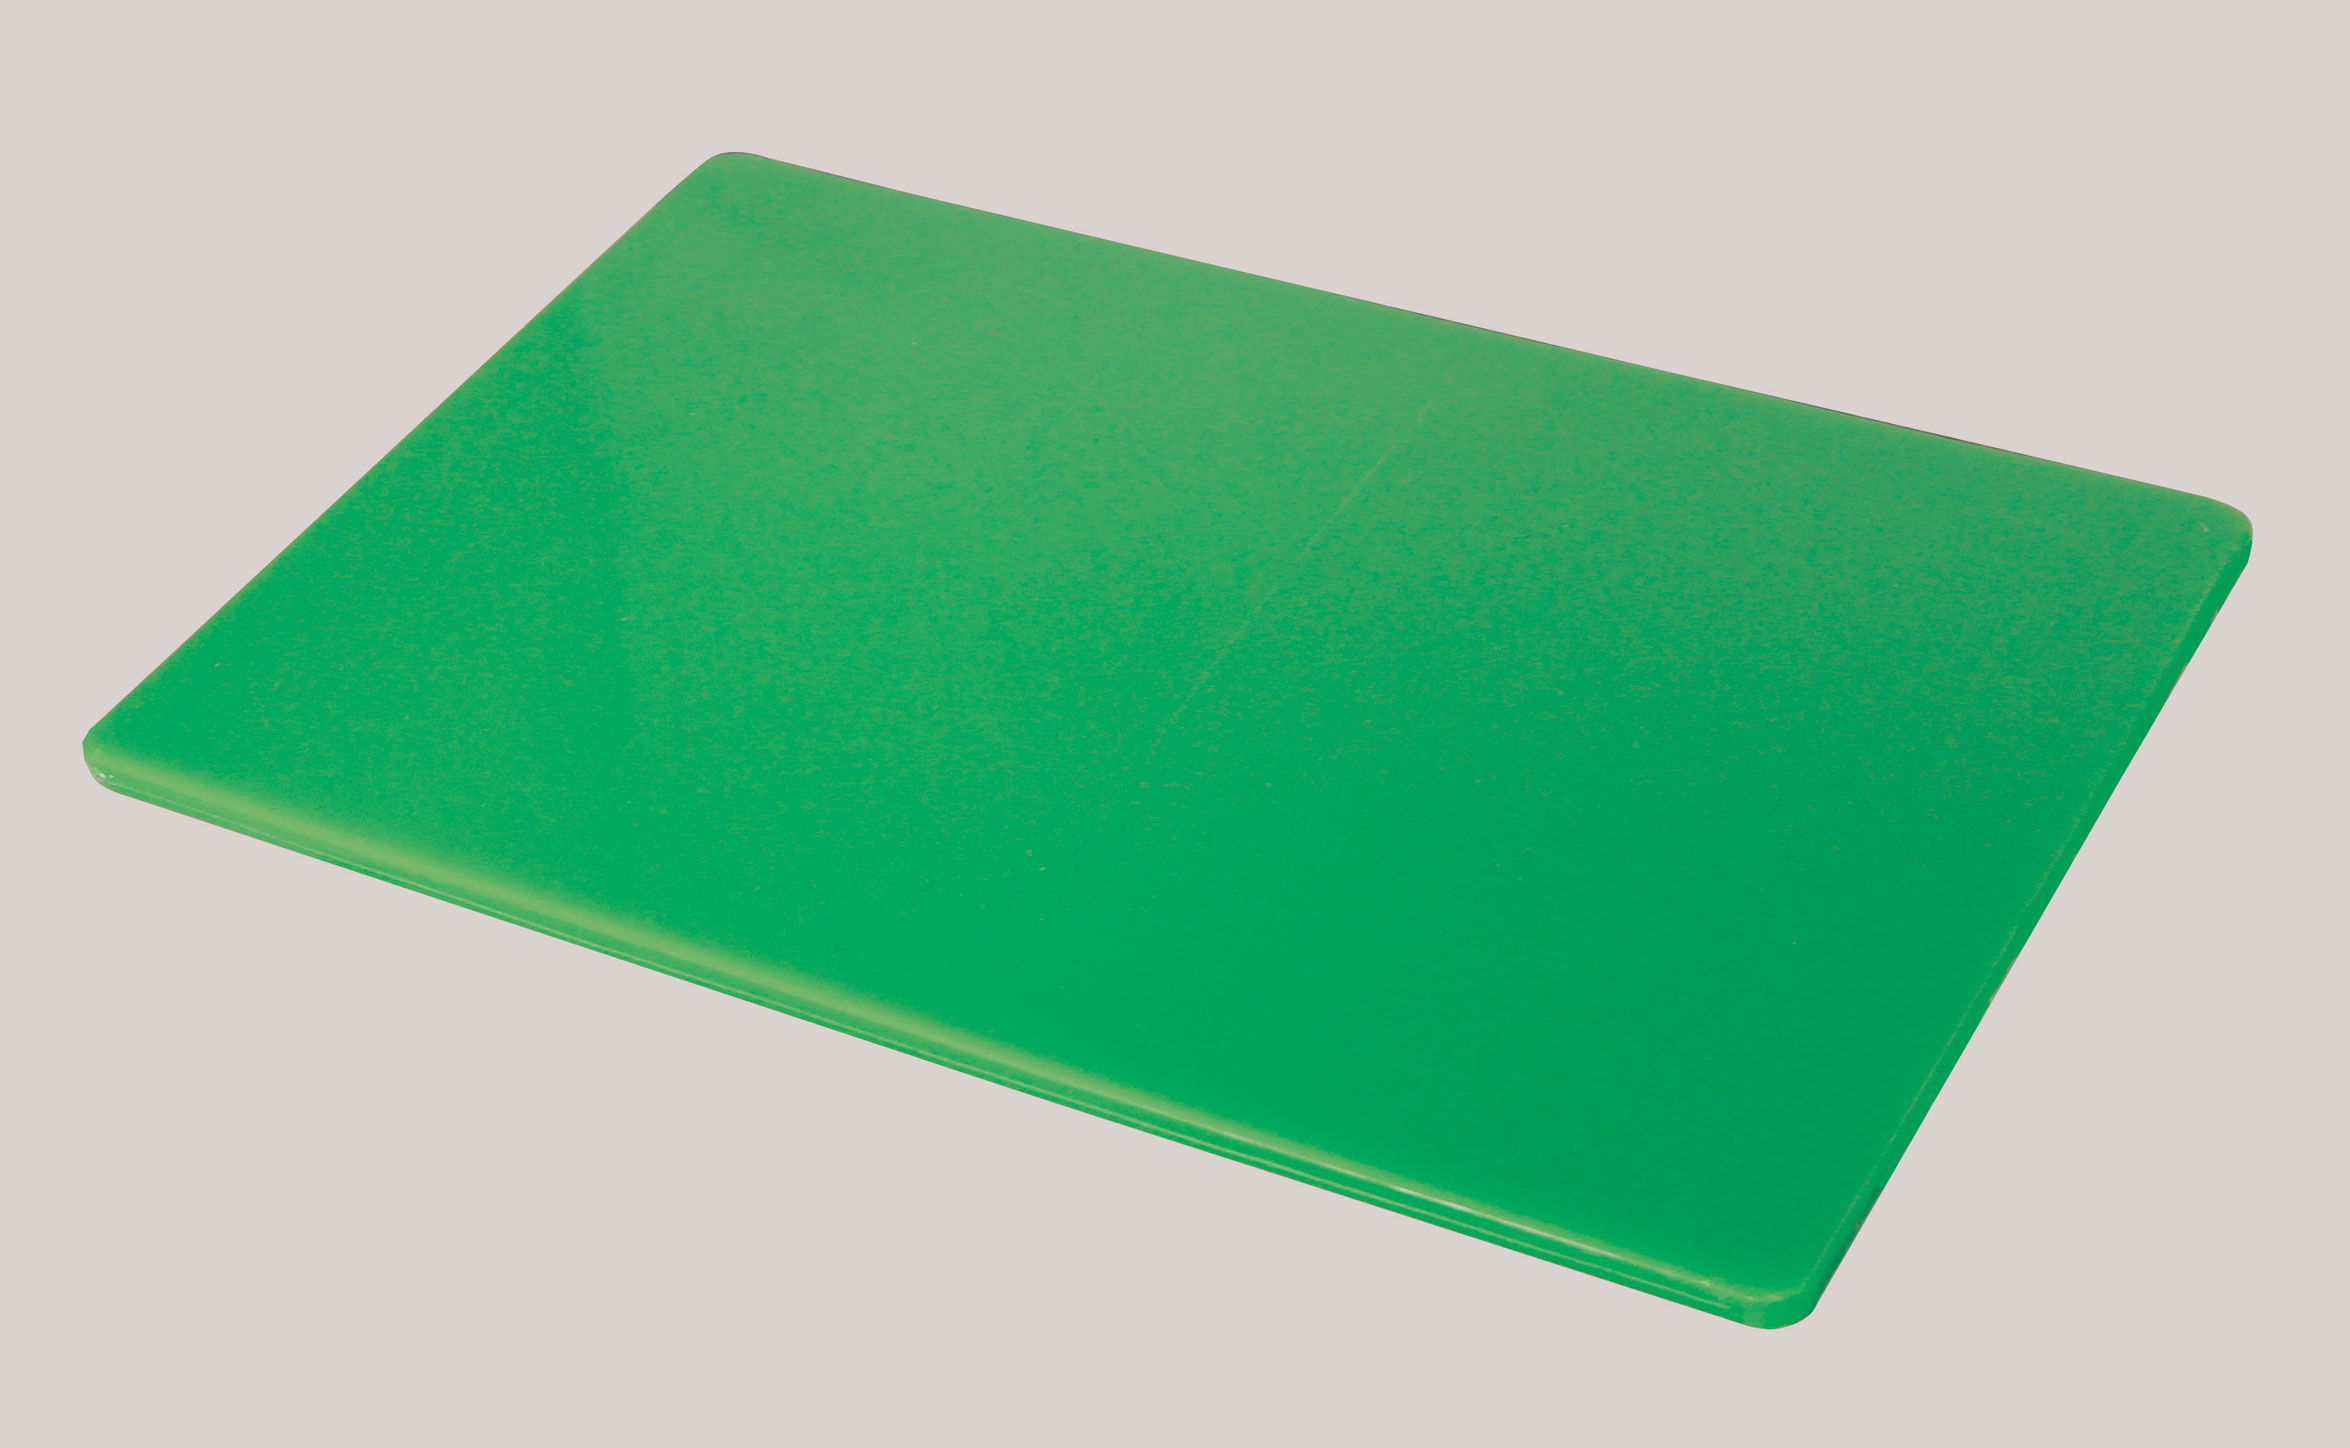 Green High Density Standard Si ze Chopping Board 457 x 300  x 12.7 mm